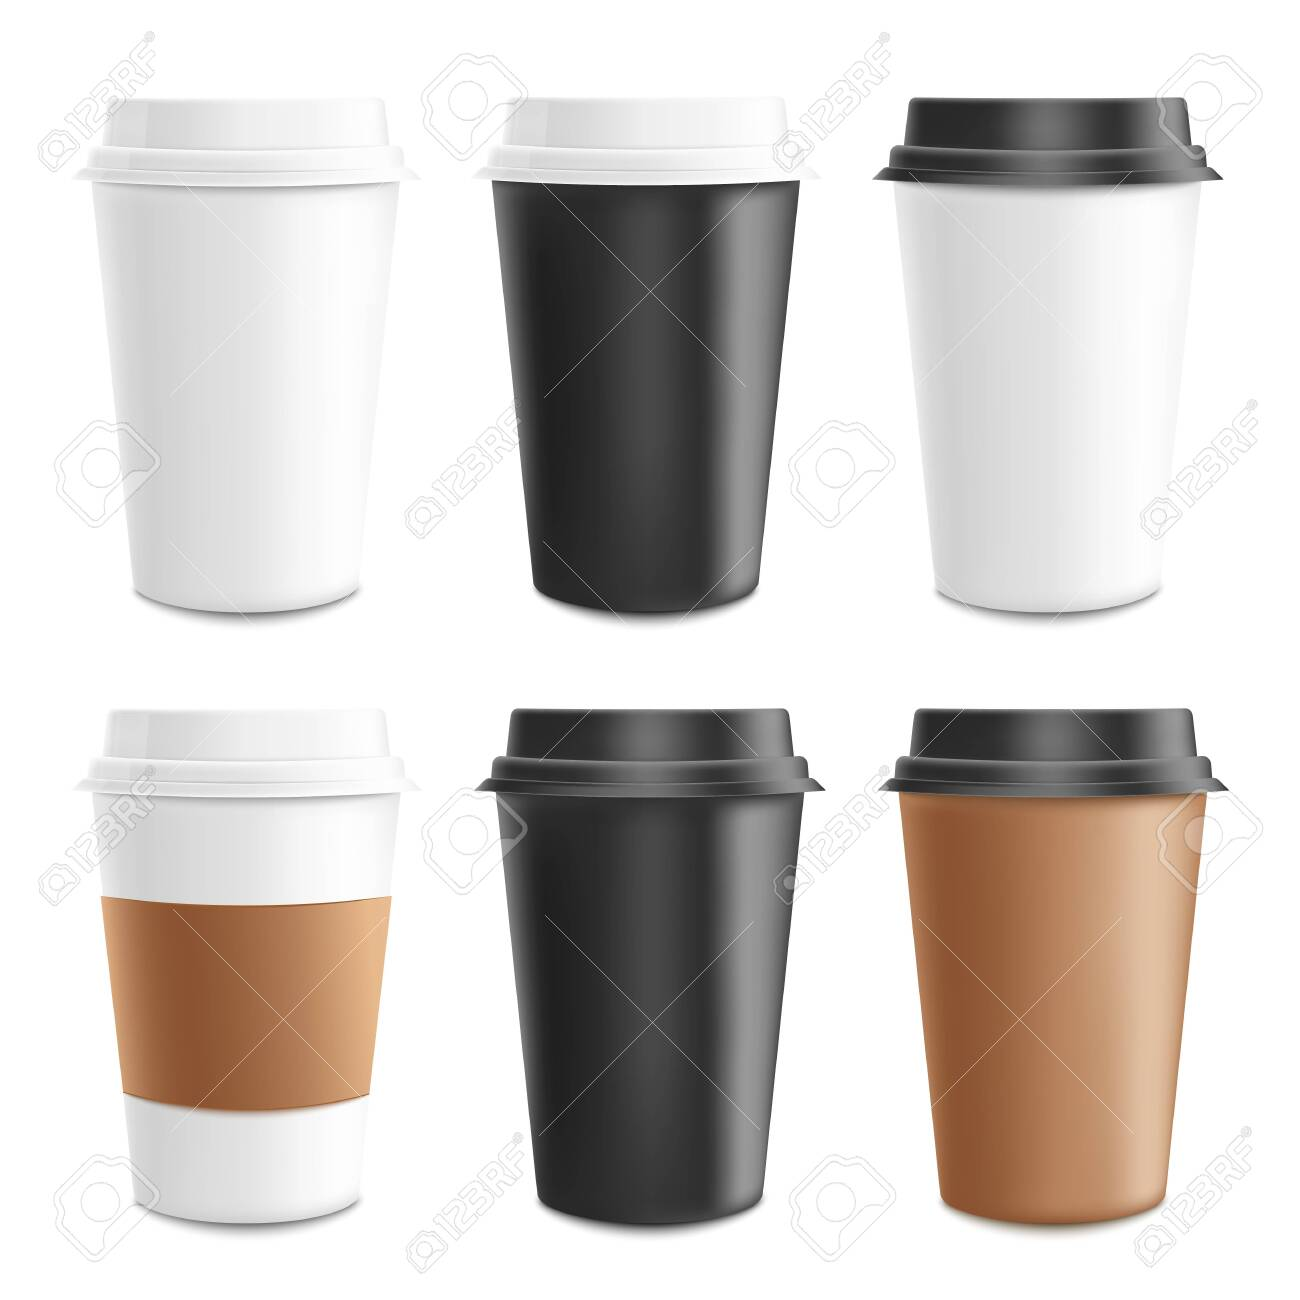 Mockup and template realistic 3d set of paper, cardboard and plastic coffee cup. Disposable plastic and paper coffee cup for hot drinks. Cappuccino, espresso and cafe template, vector illustration. - 120920421